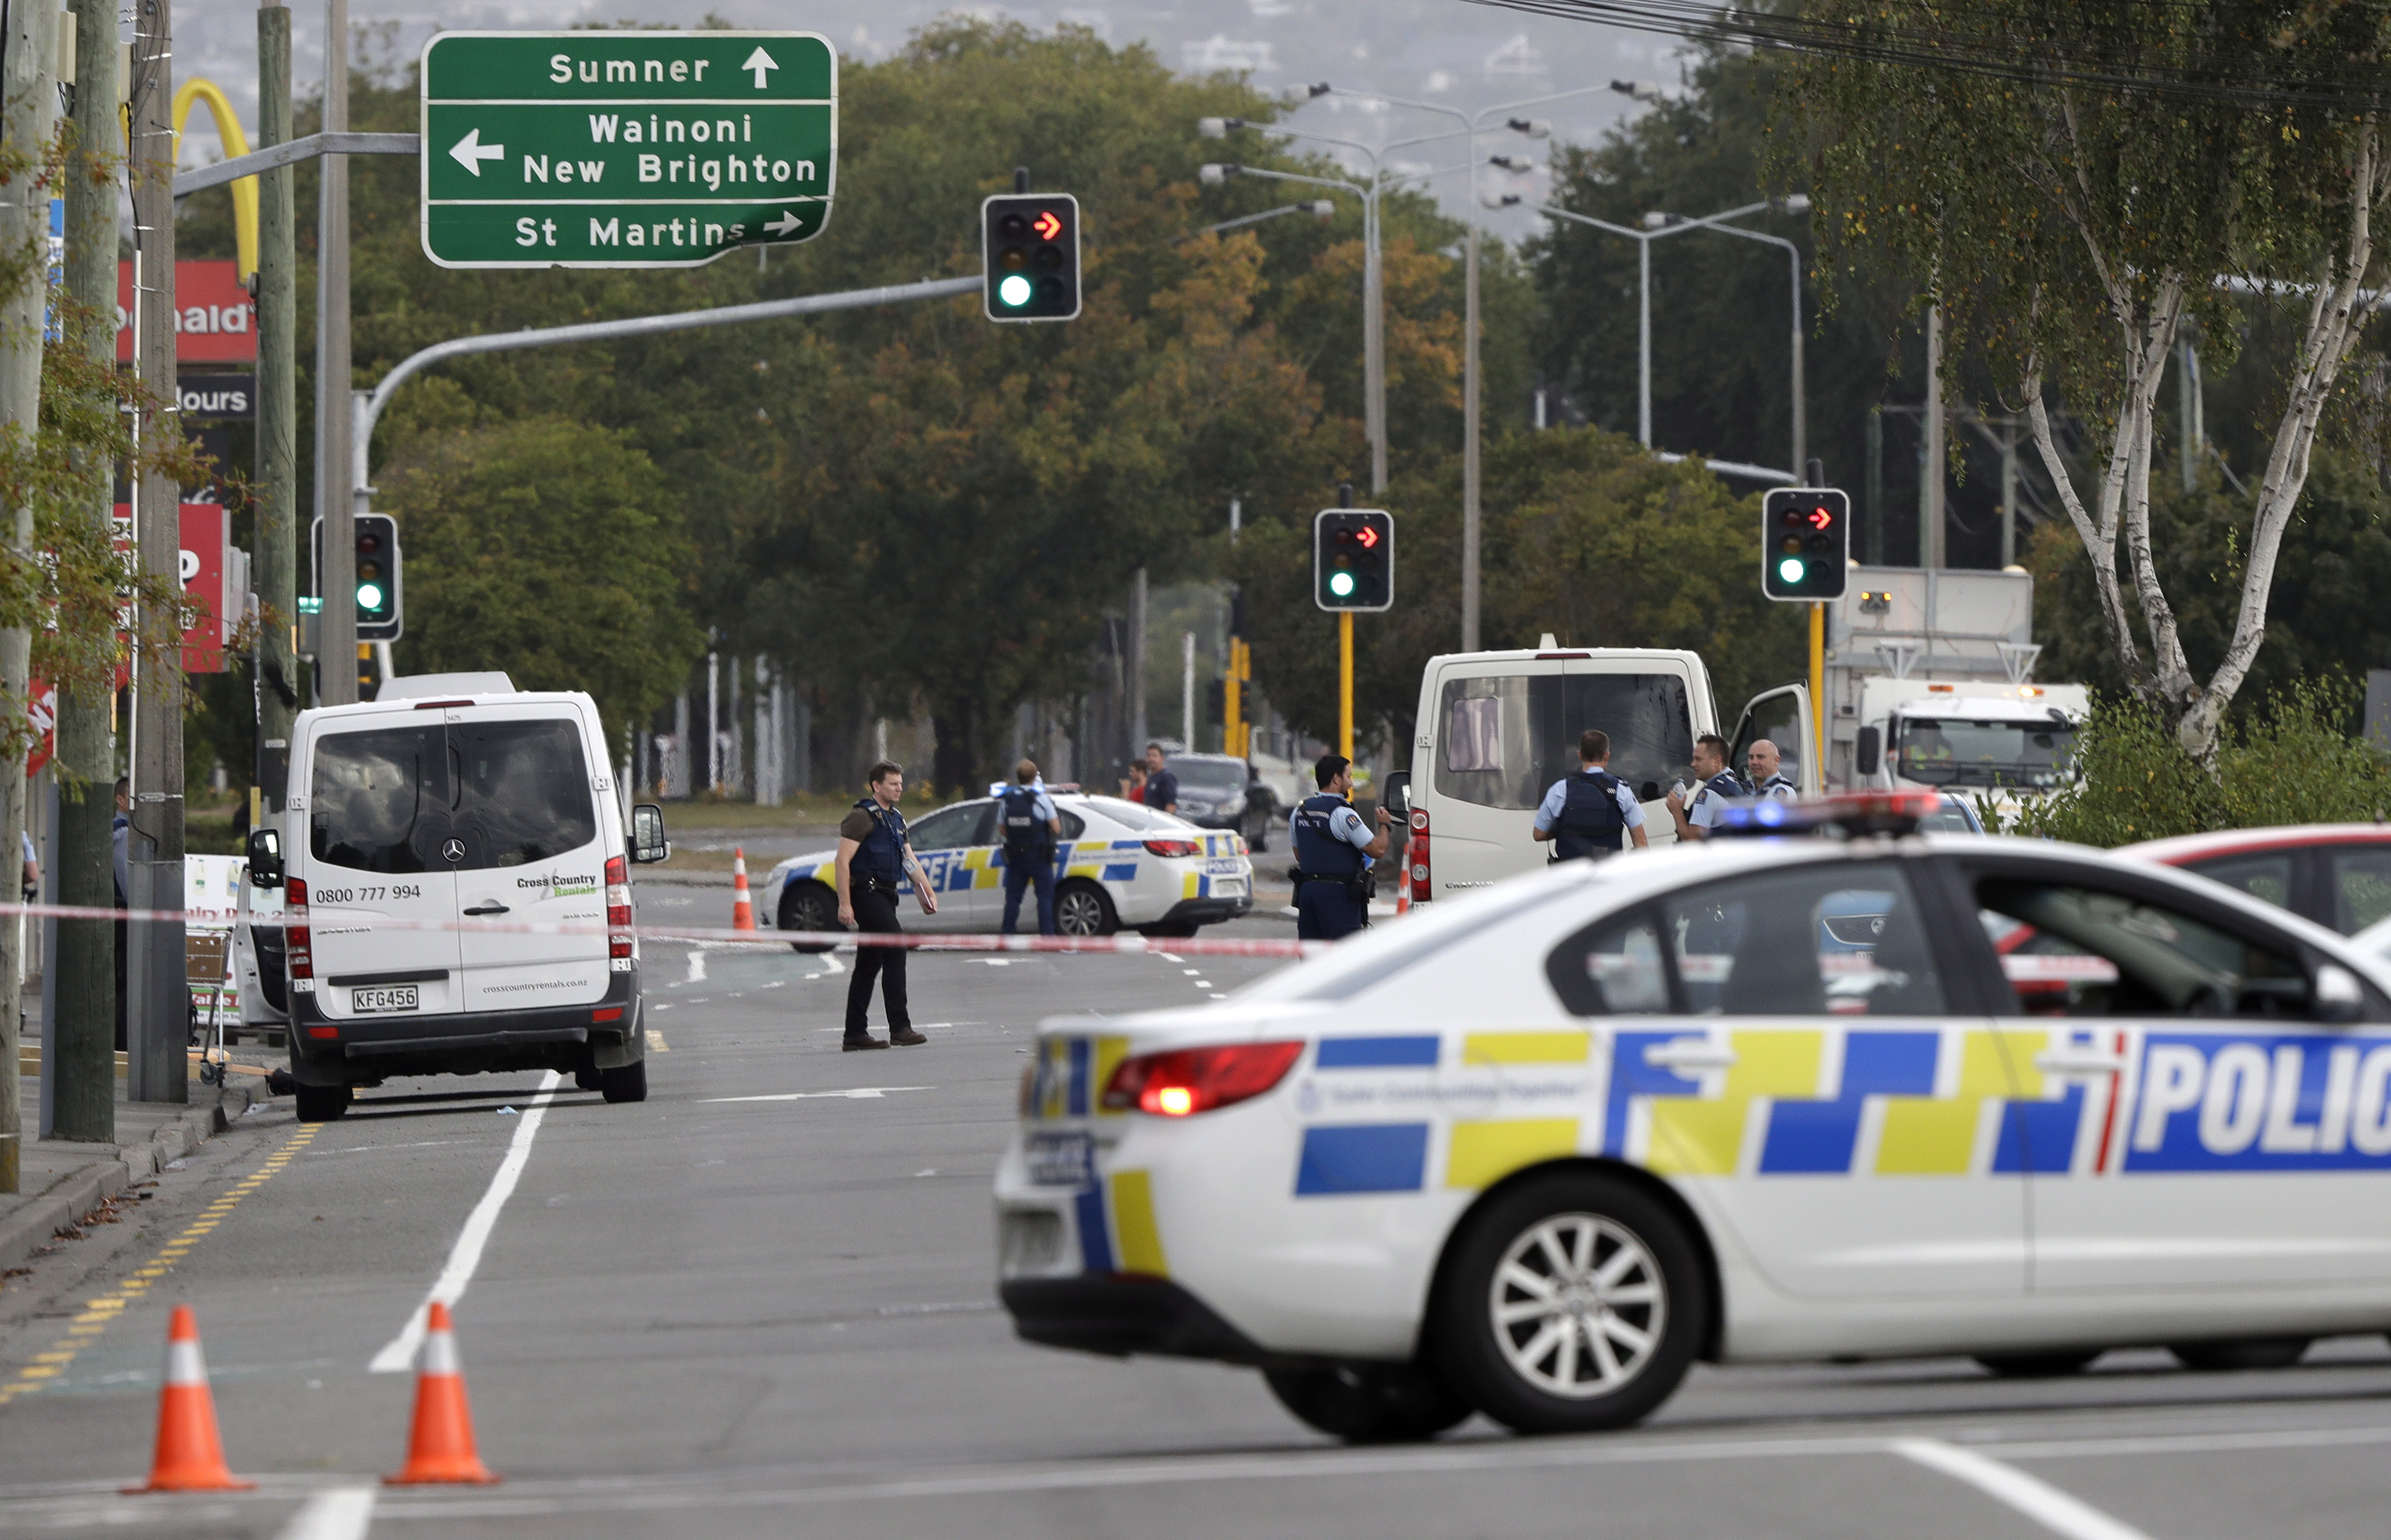 New Zealand Mosque Shooting Photo: Police Block The Road Near The Shooting At A Mosque In